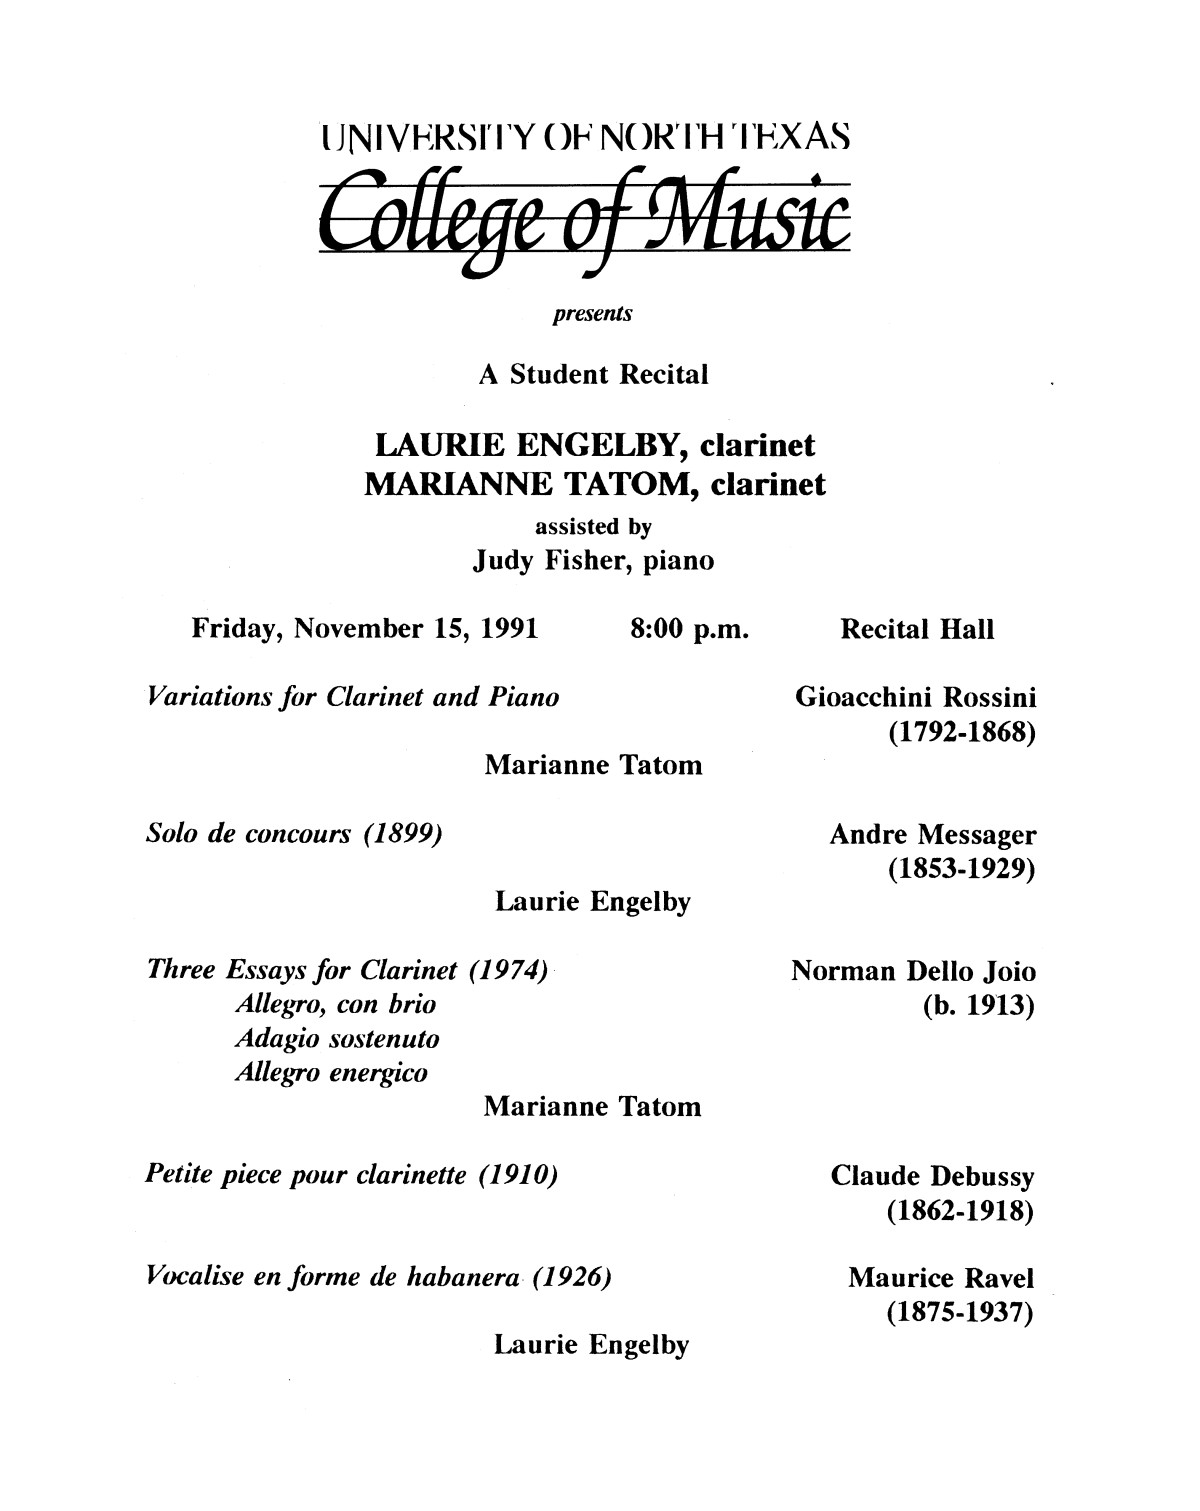 College of Music program book 1991-1992 Student Performances Vol. 2                                                                                                      [Sequence #]: 55 of 310